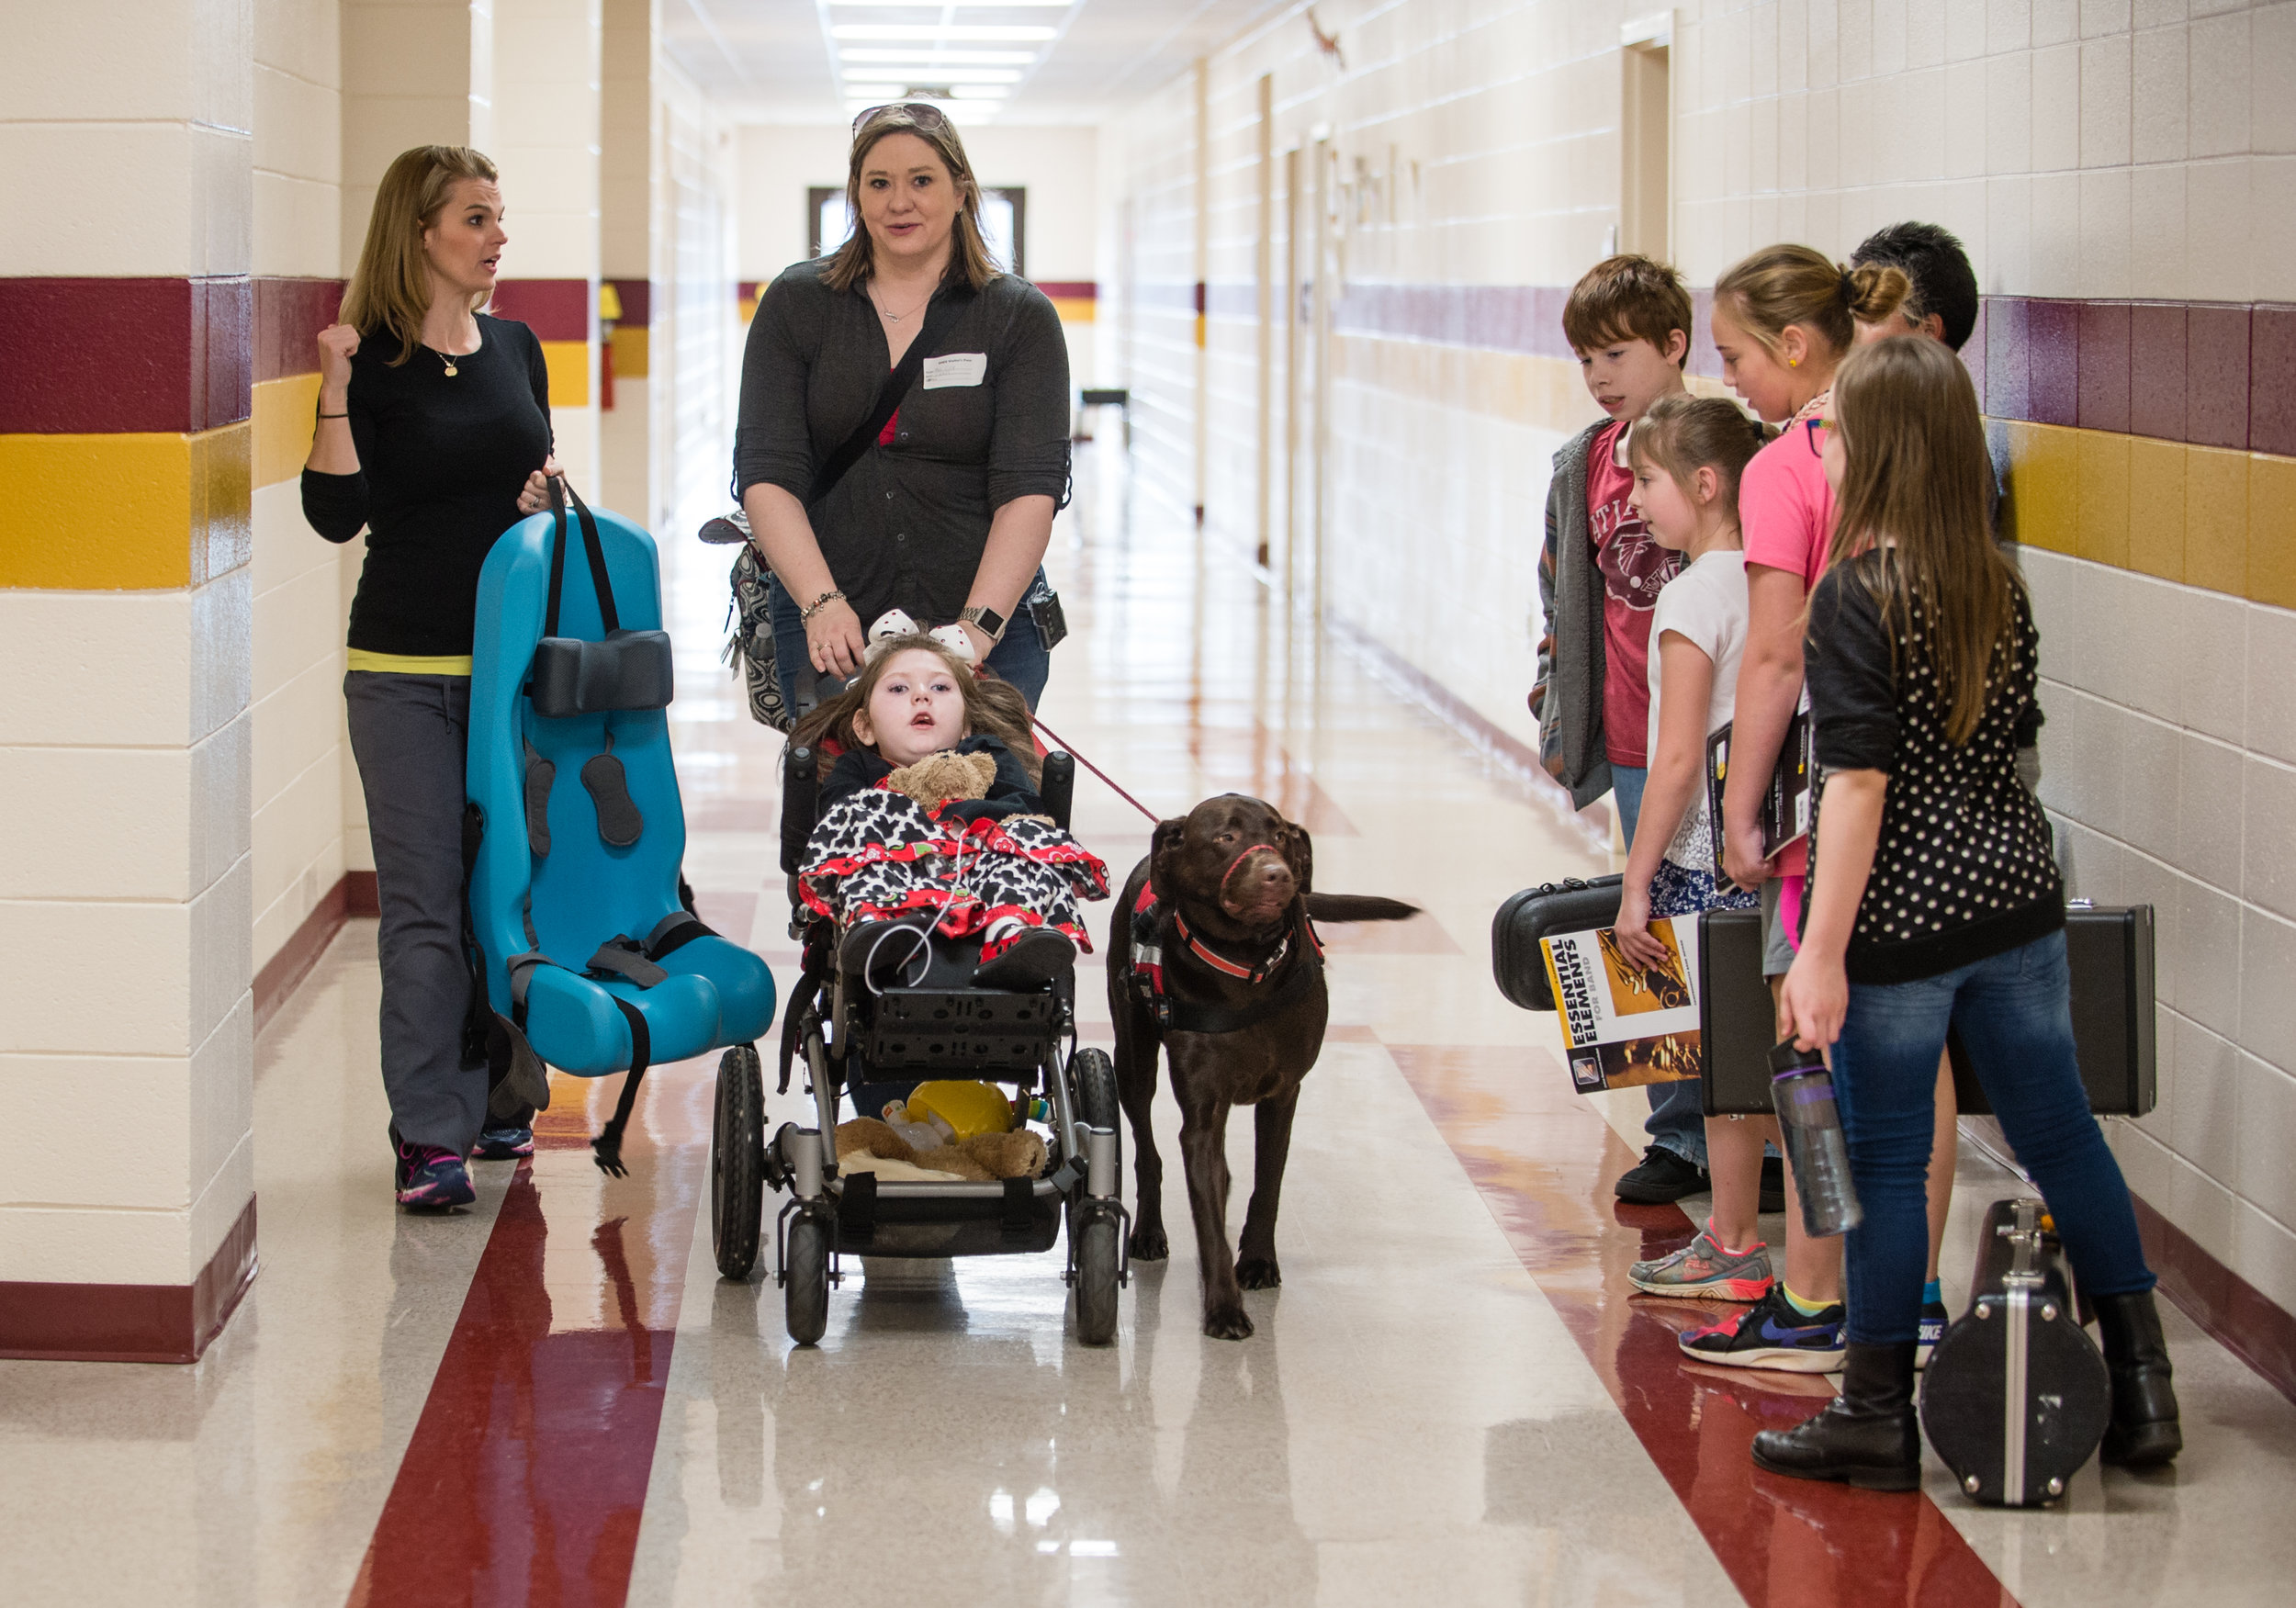 Janea pushes Haleigh and walks with physical therapist Julie Sullens down a hallway at Hubbard Elementary as they leave one of two weekly physical therapy sessions at the school.